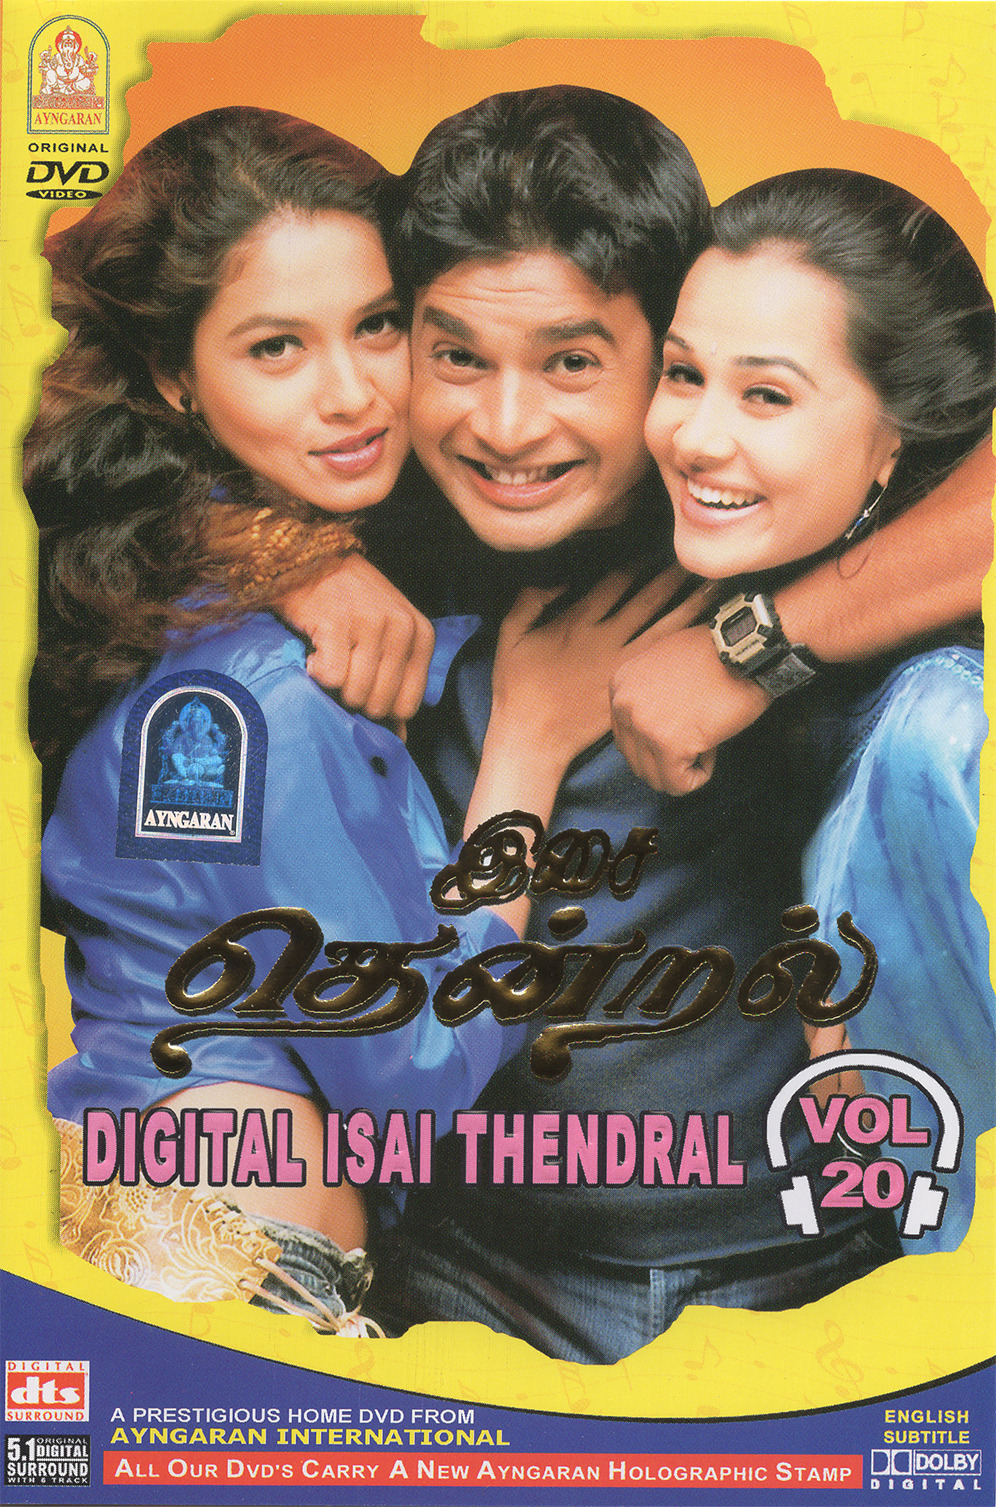 Digital Isai Thendral Vol 20